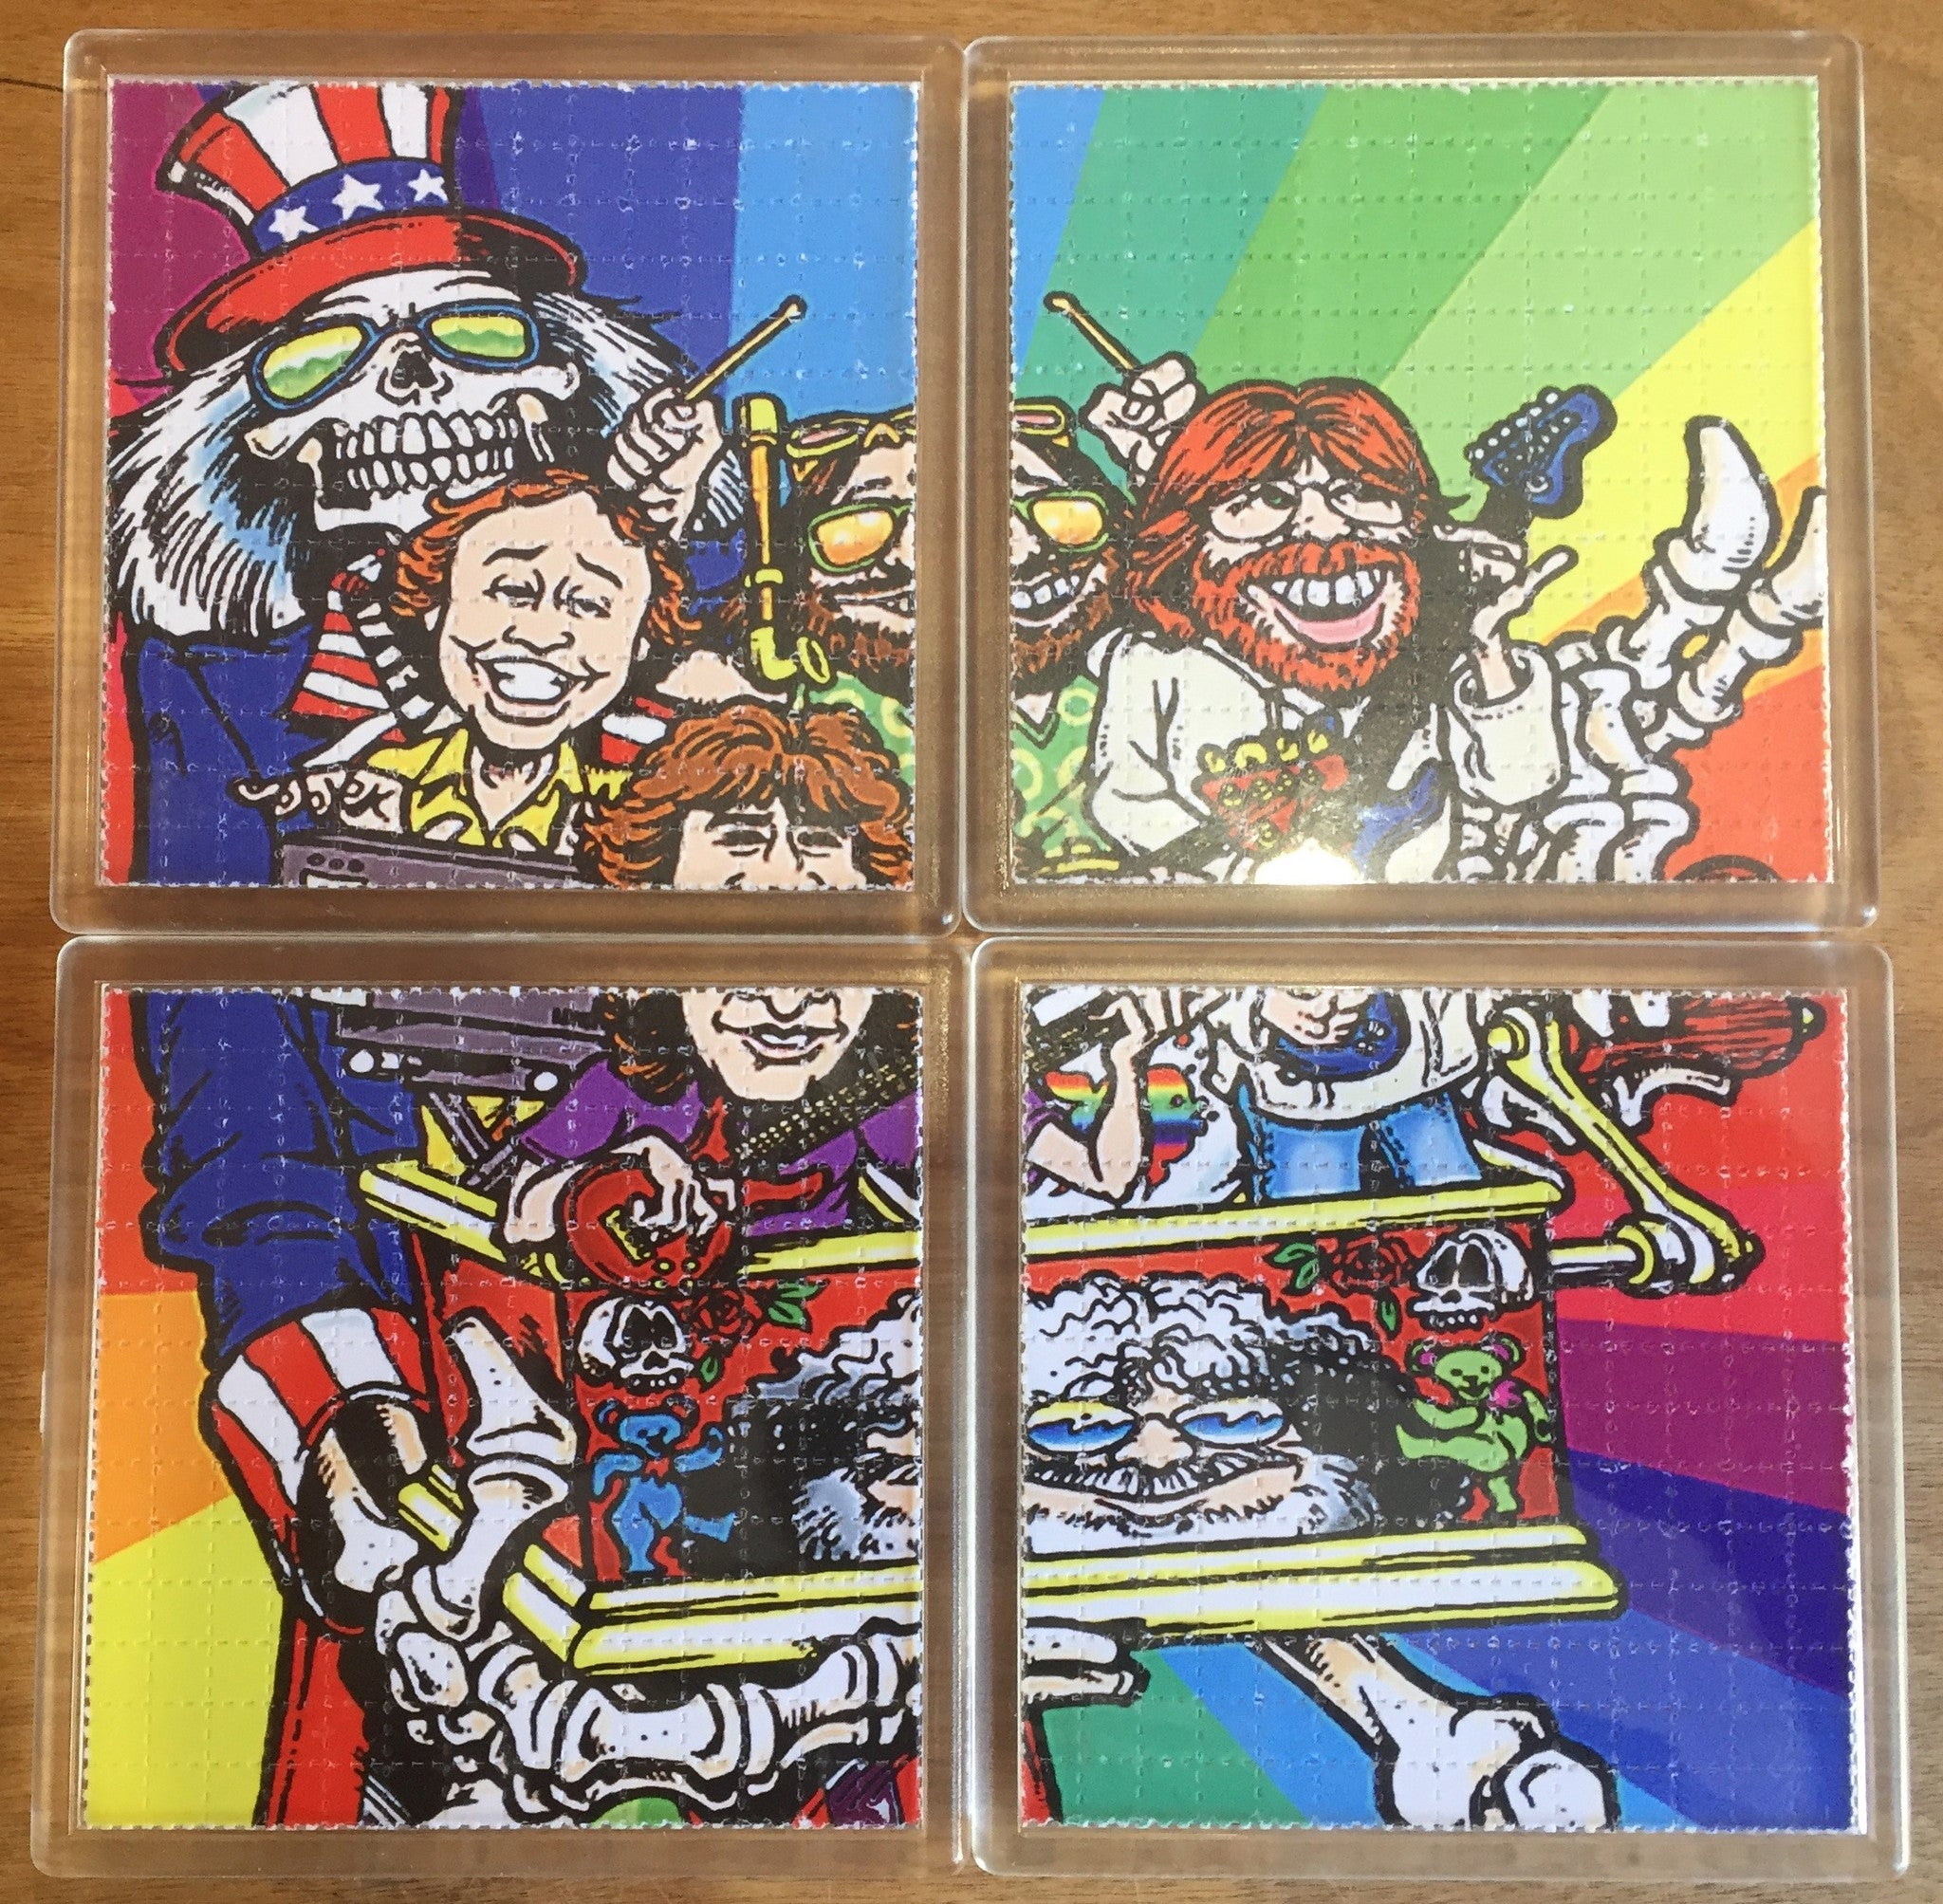 Grateful Dead - Psychedelic - Blotter Art - Highly Collectible Artwork Blotter Paper Coaster (4 pack)